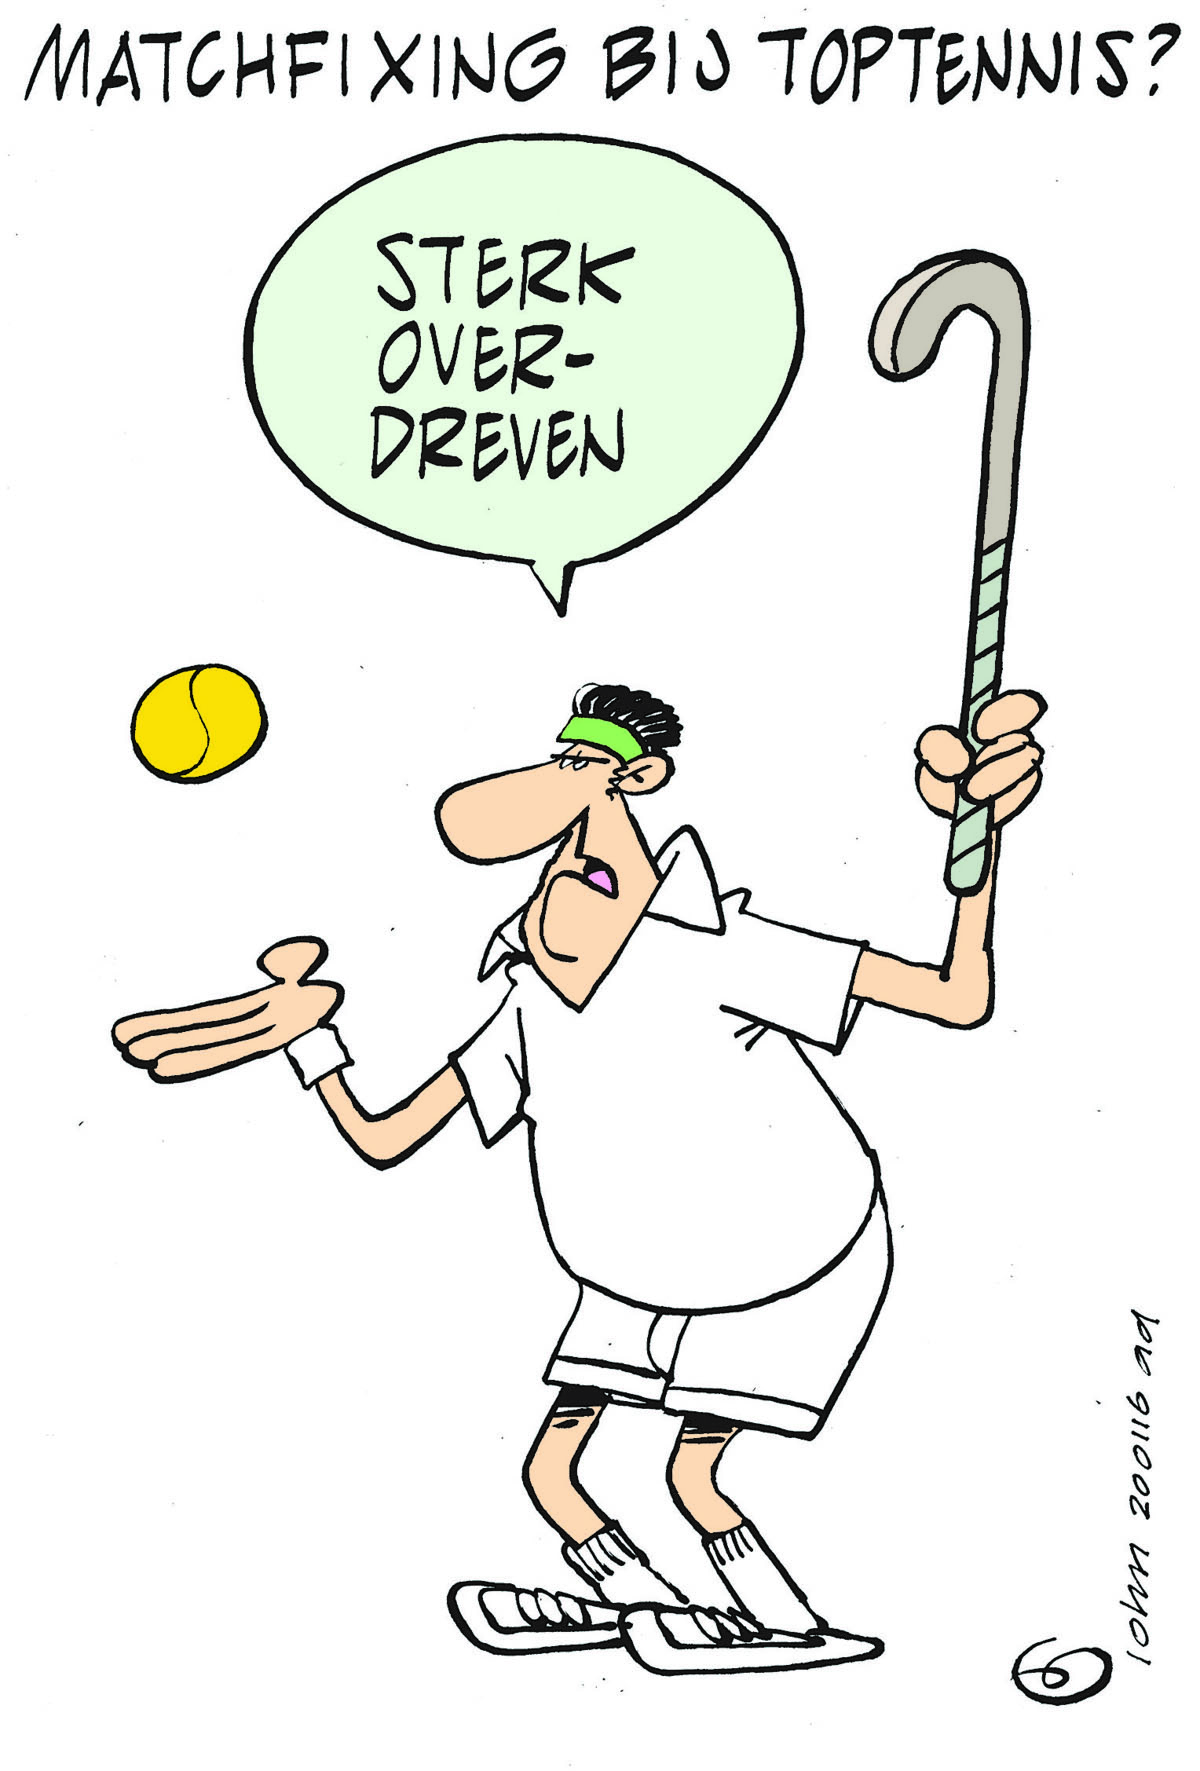 matchfixing tennis